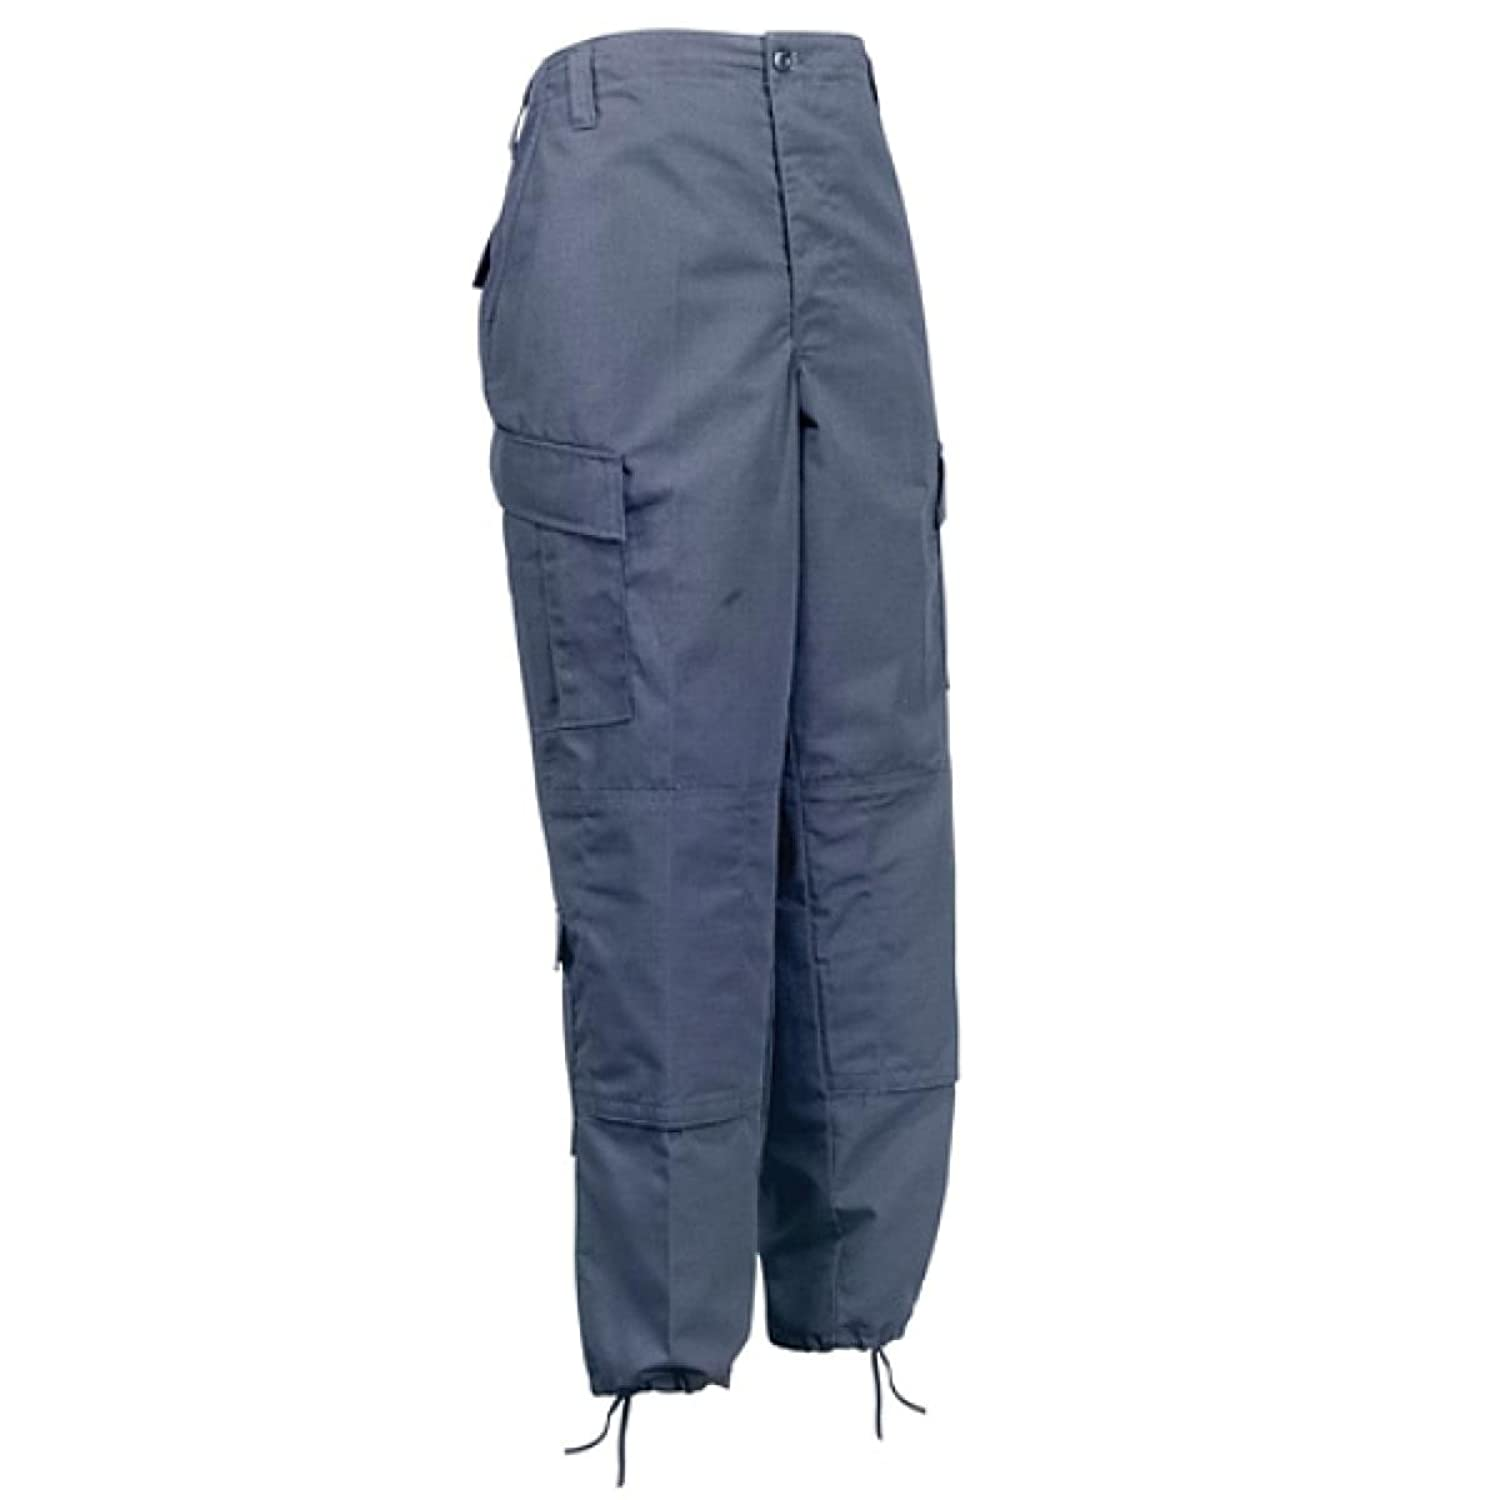 Tru-Spec T.R.U. (Tactical Response Uniform) Pant, Navy, Large Long